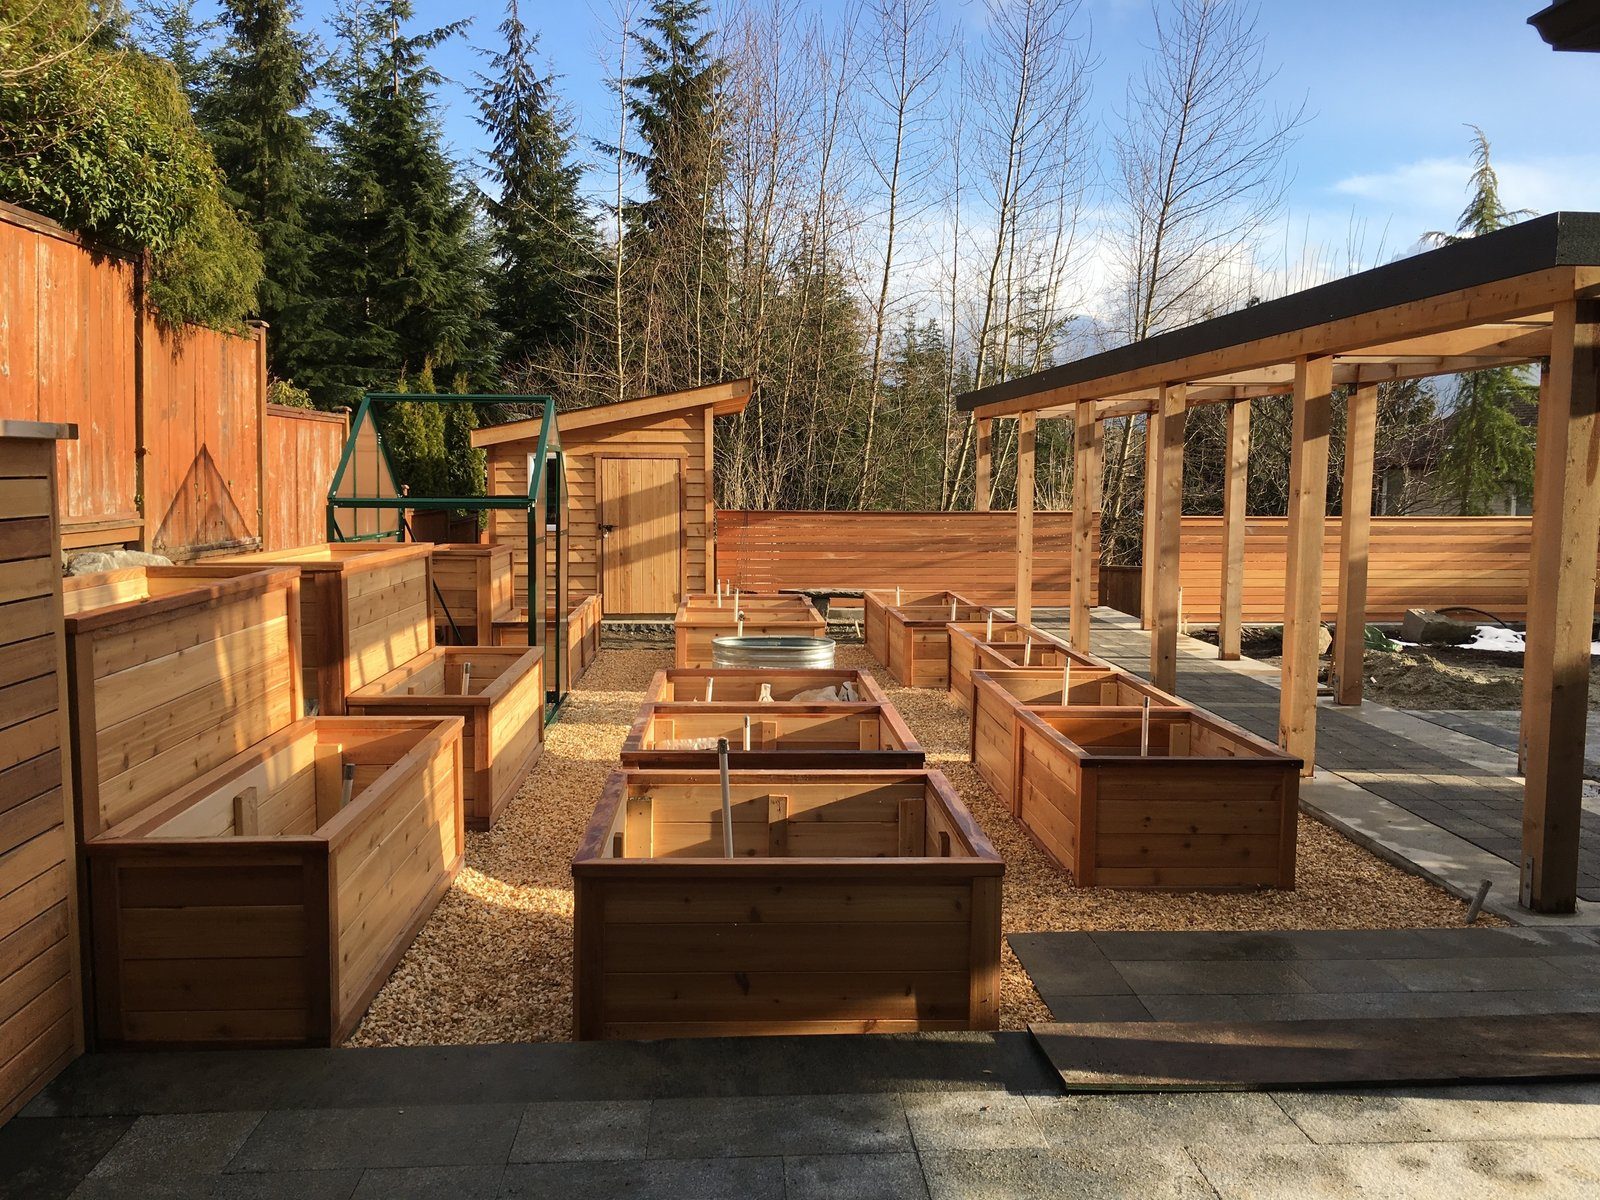 """Overlooking the """"growzone"""" with raised cedar planter boxes, greenhouse & potting shed next to the pergola  20+ Ways to Design with Planters by Allie Weiss"""